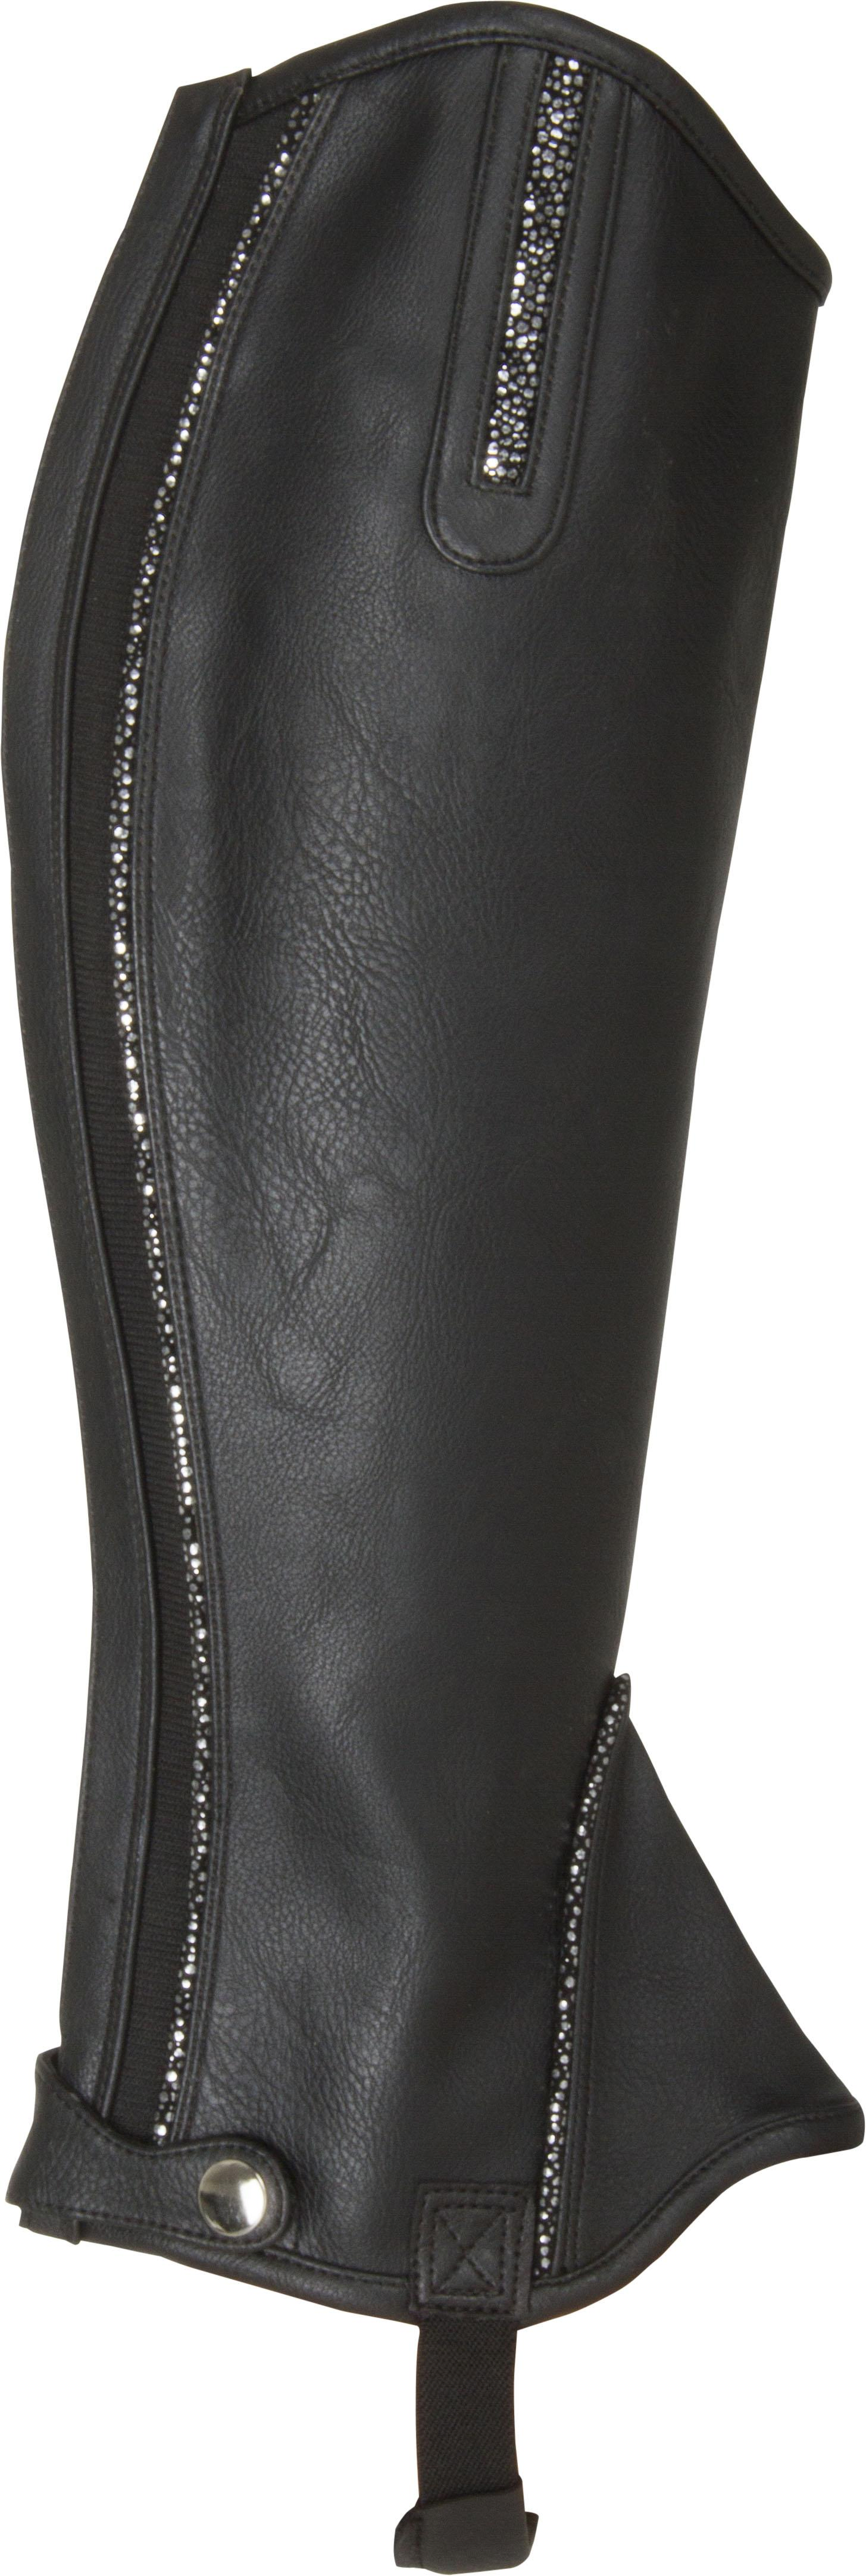 Imperial Riding Mini chaps synthetisch leder Glitter